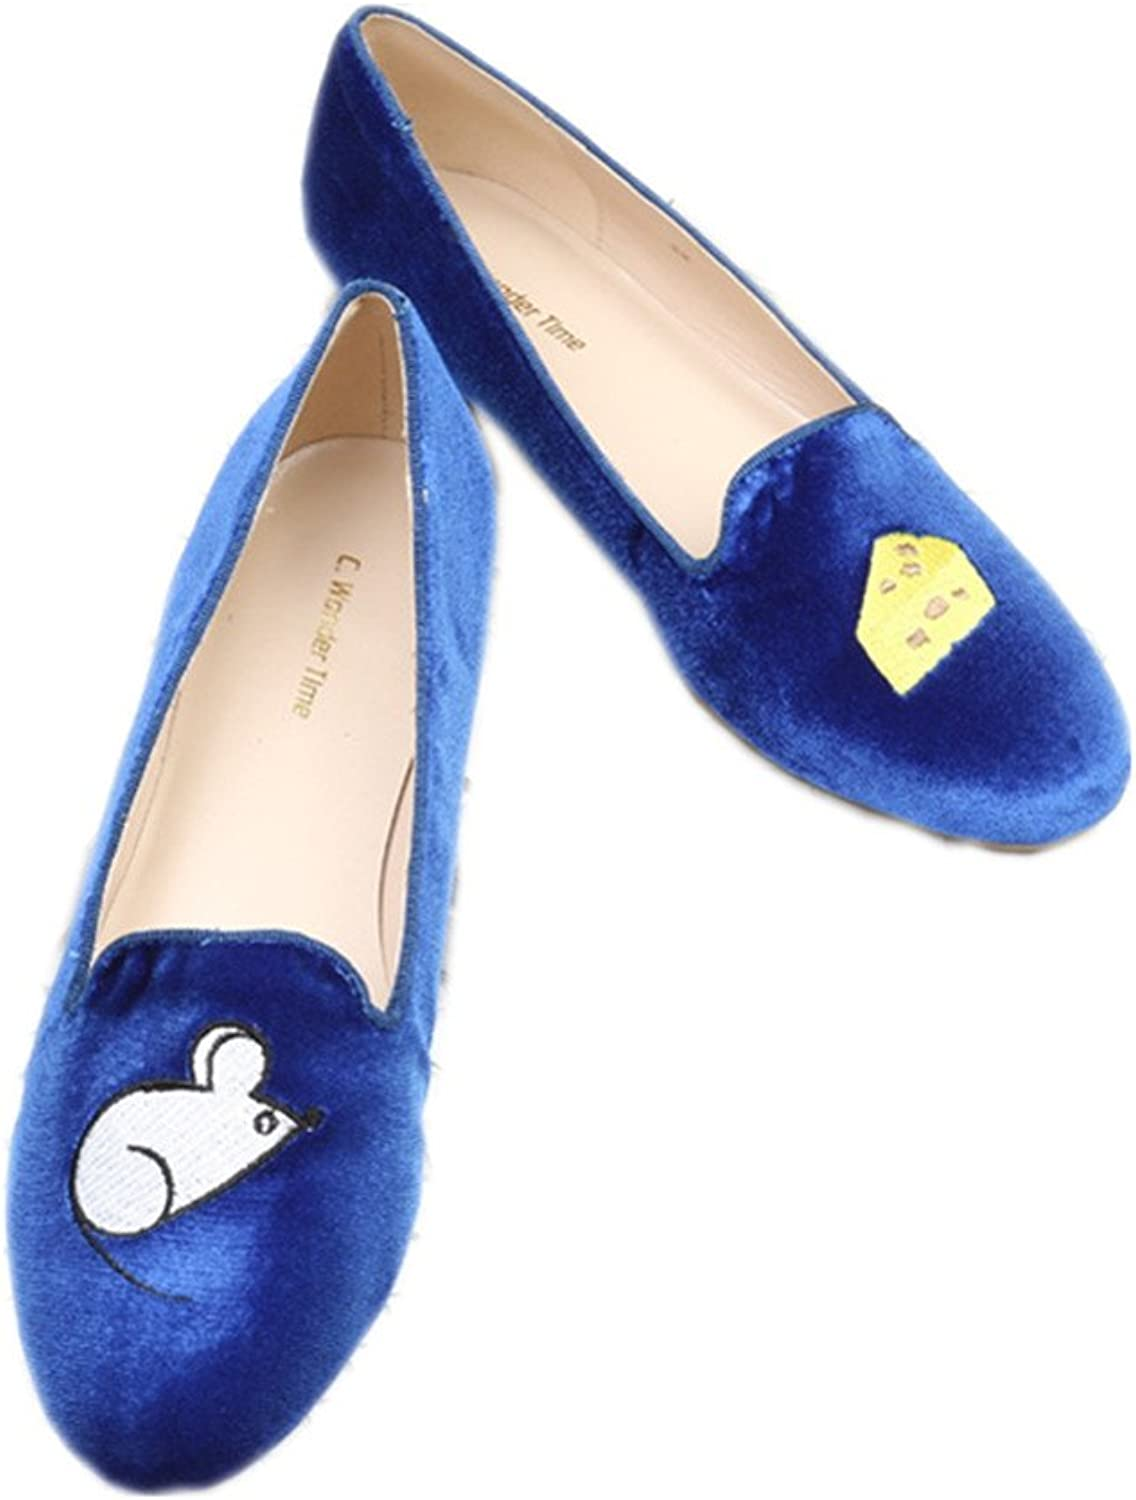 C. Wonder Time bluee Ballet Flats Loafers Espadrilles shoes for Womens